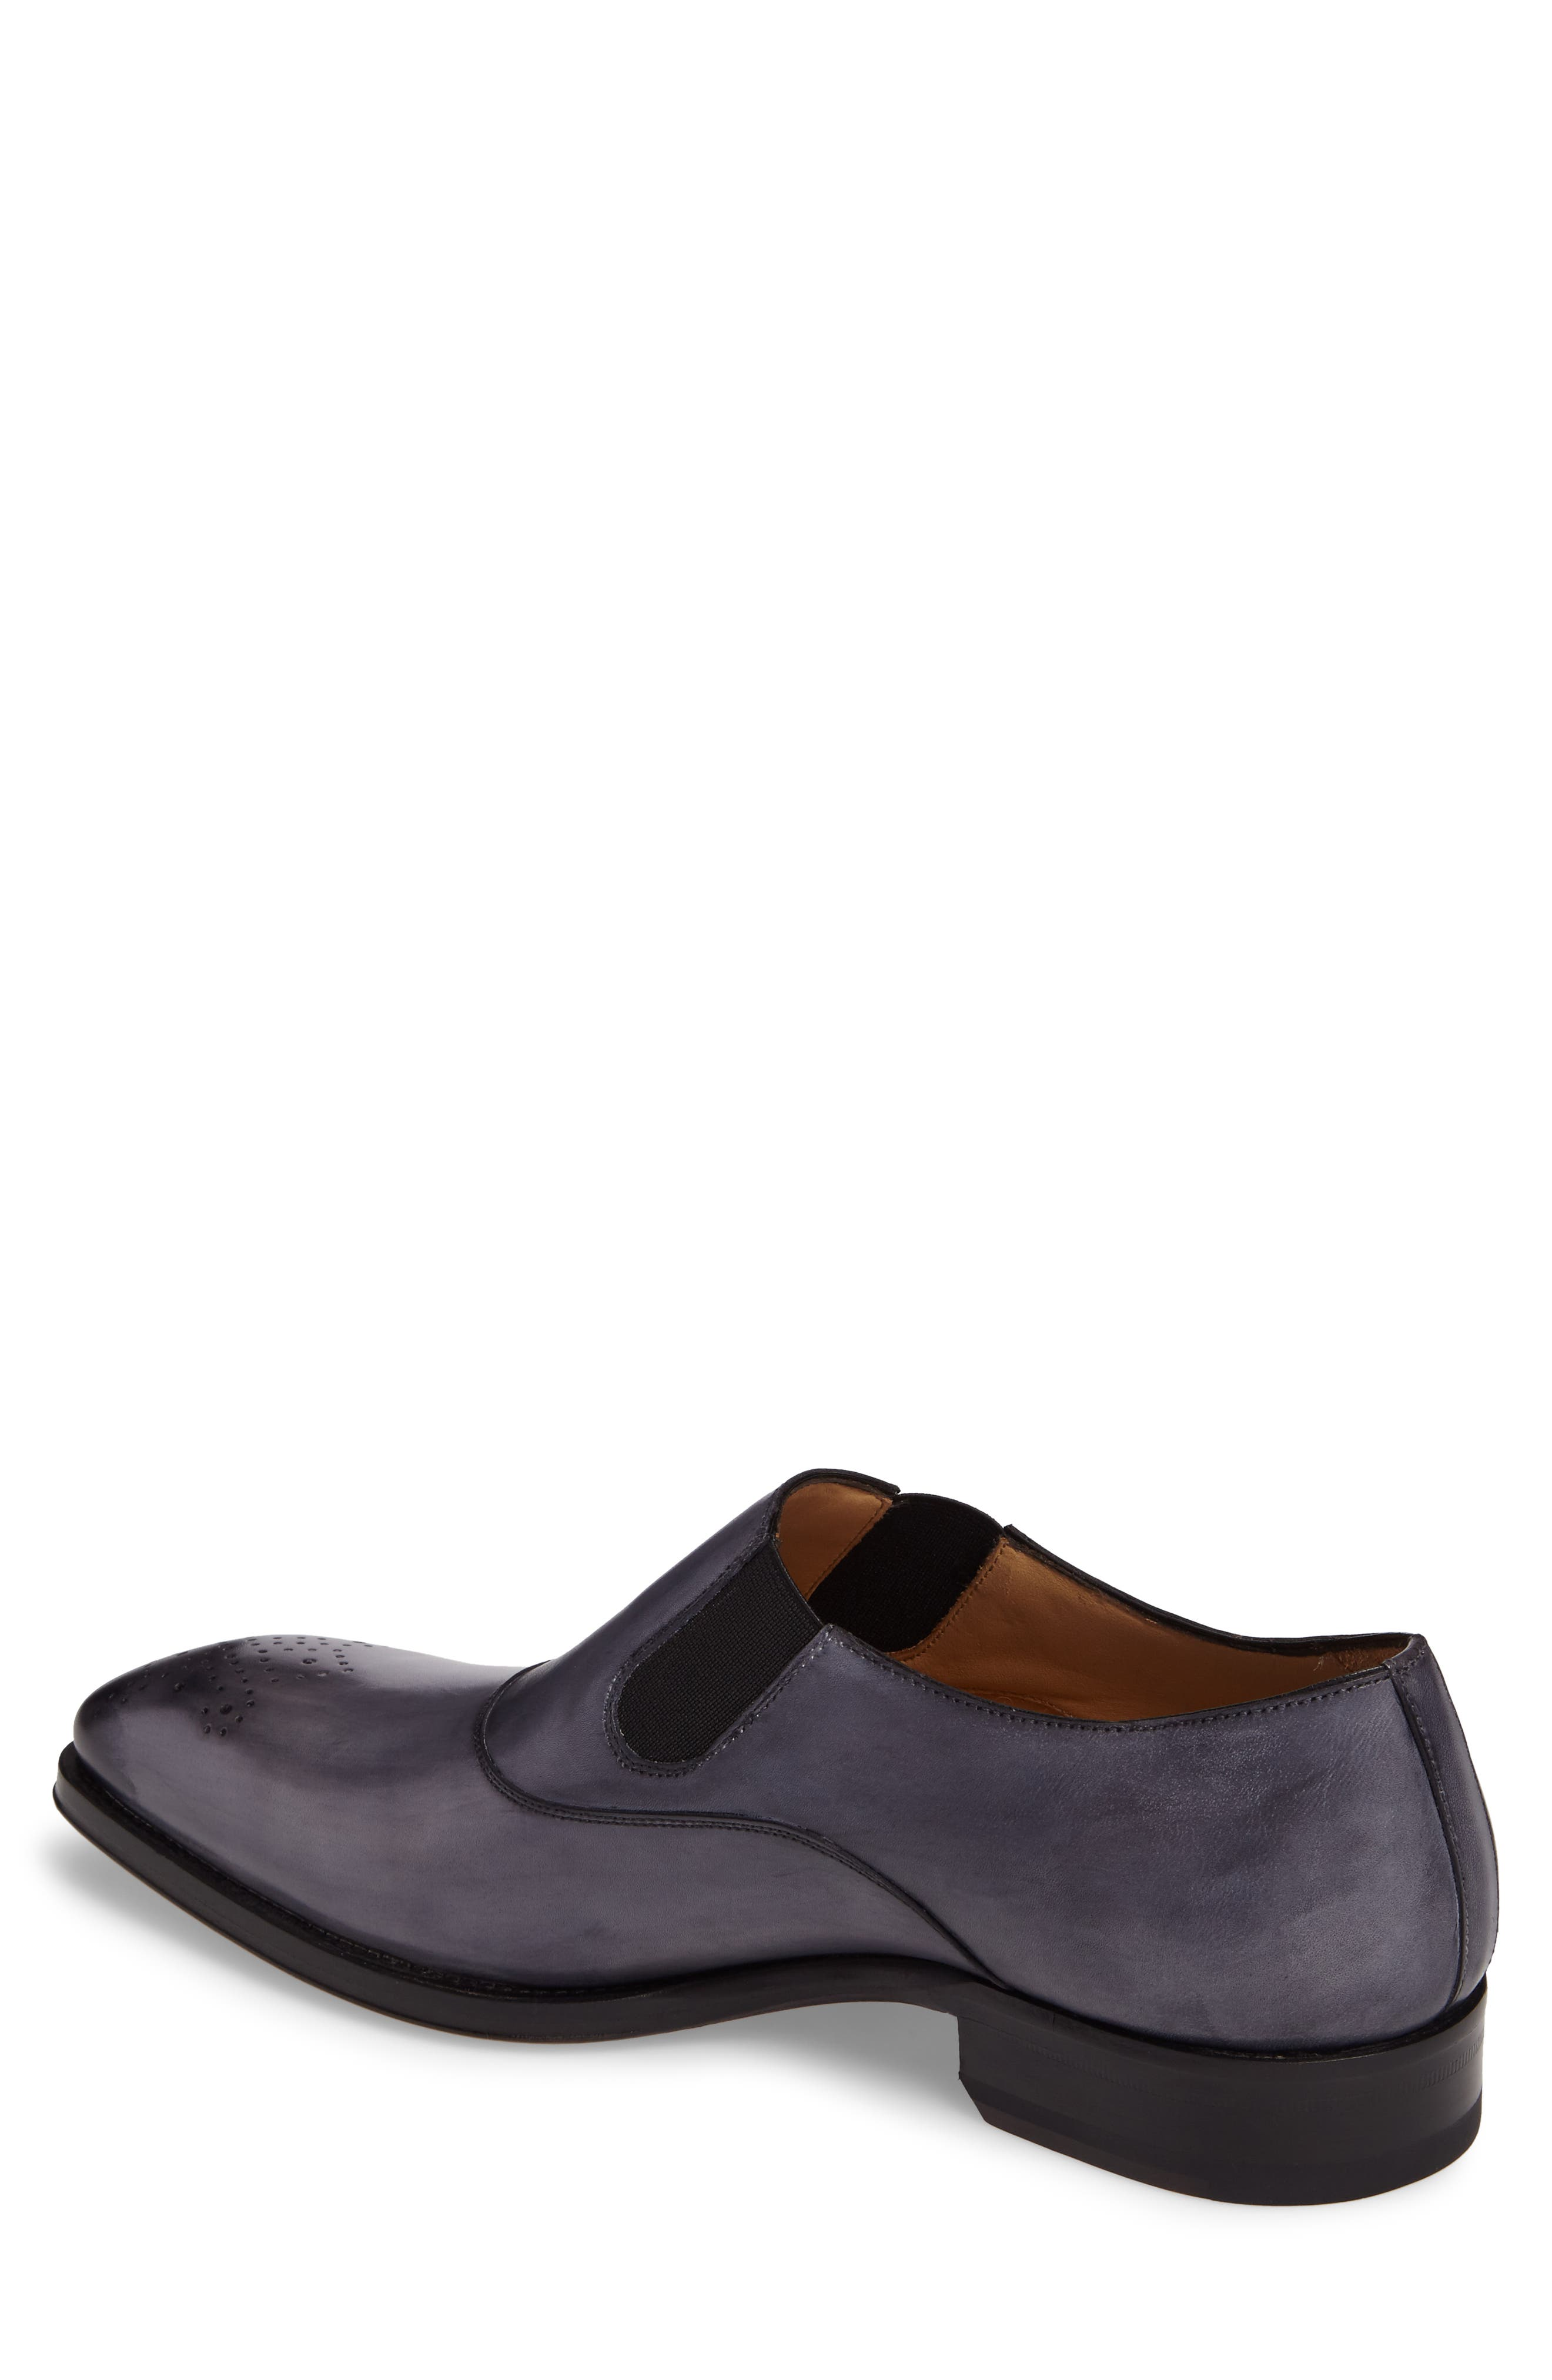 Posadas Venetian Loafer,                             Alternate thumbnail 2, color,                             Grey Leather